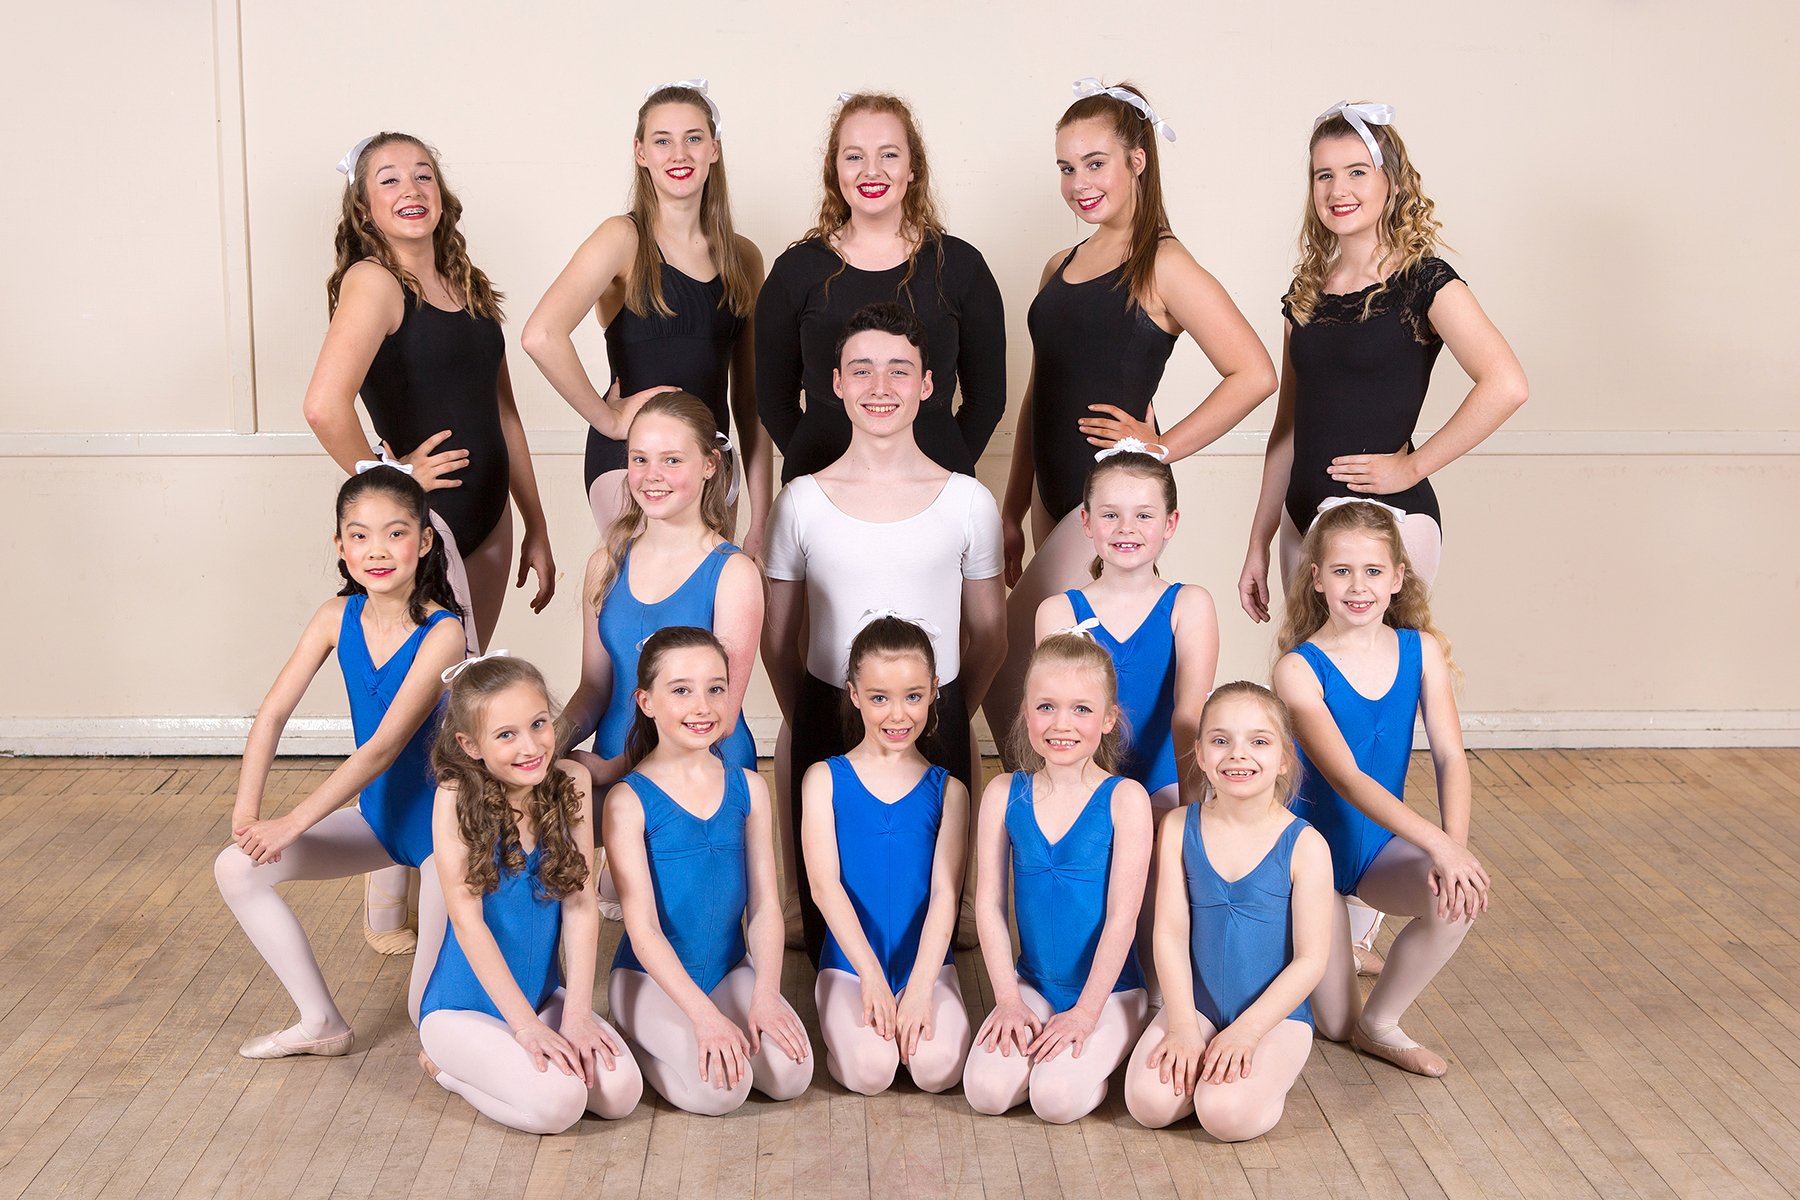 Group from JG Dance, image by Michael Pitts